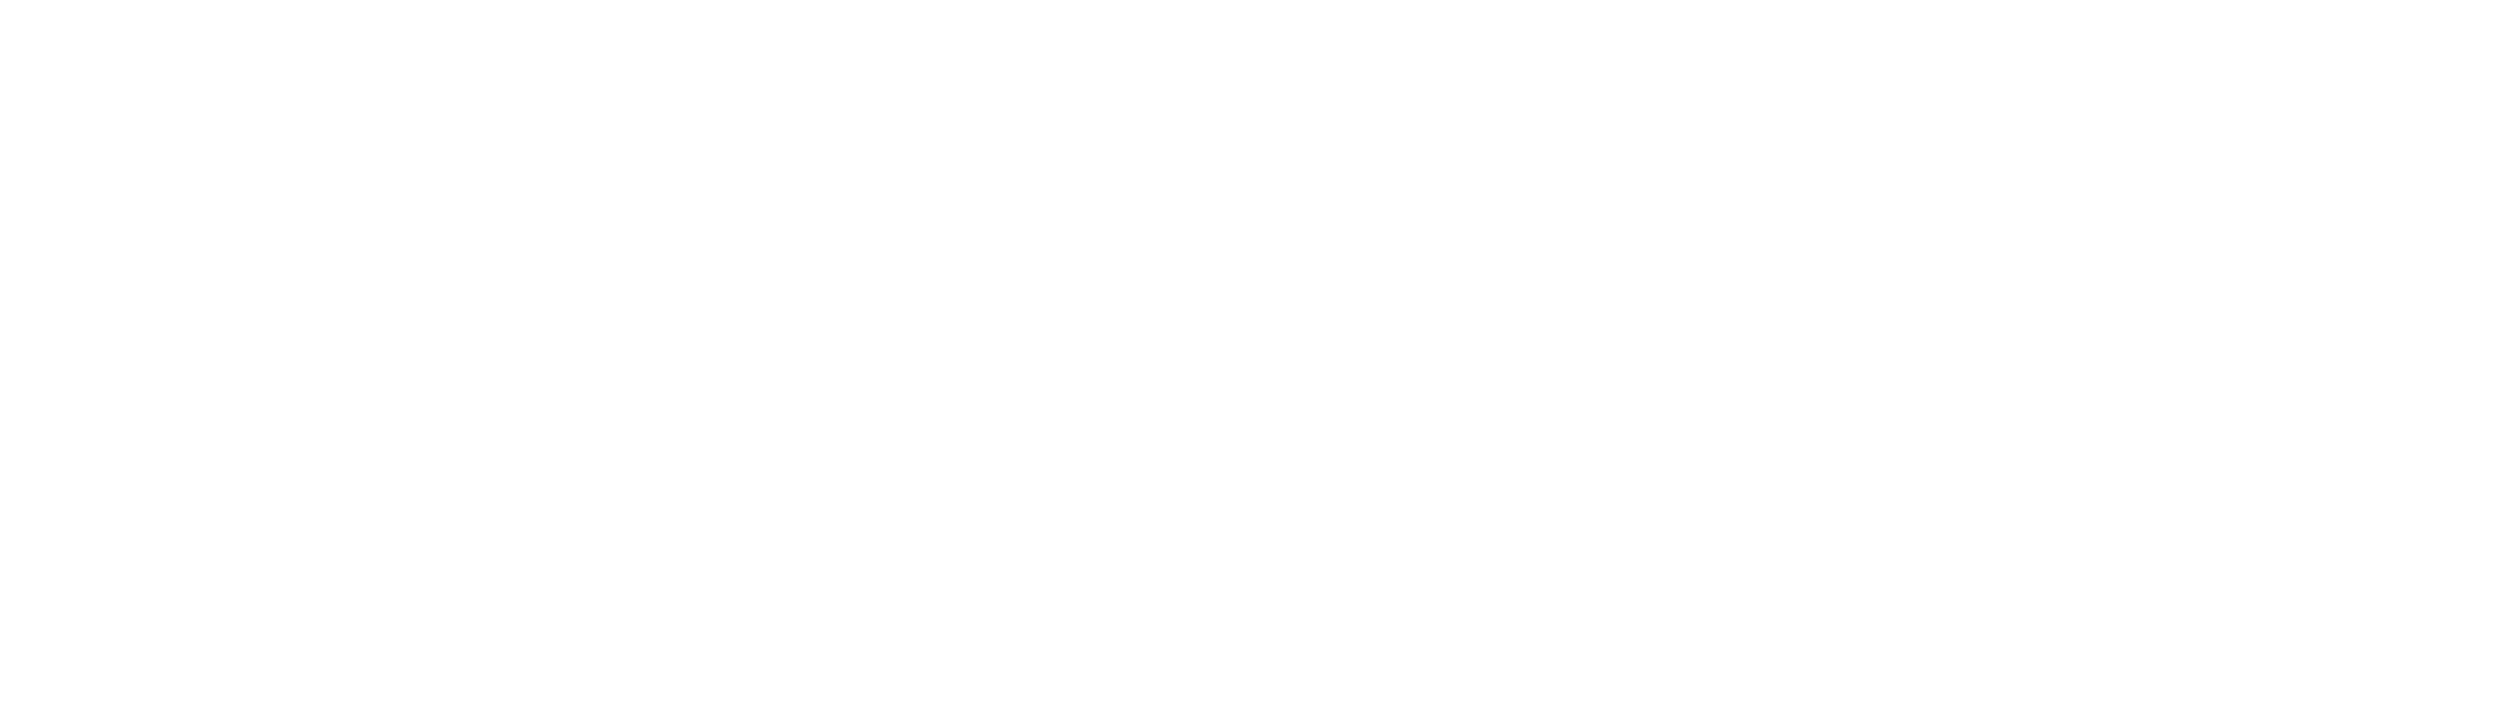 Small-Group-Watermark.png